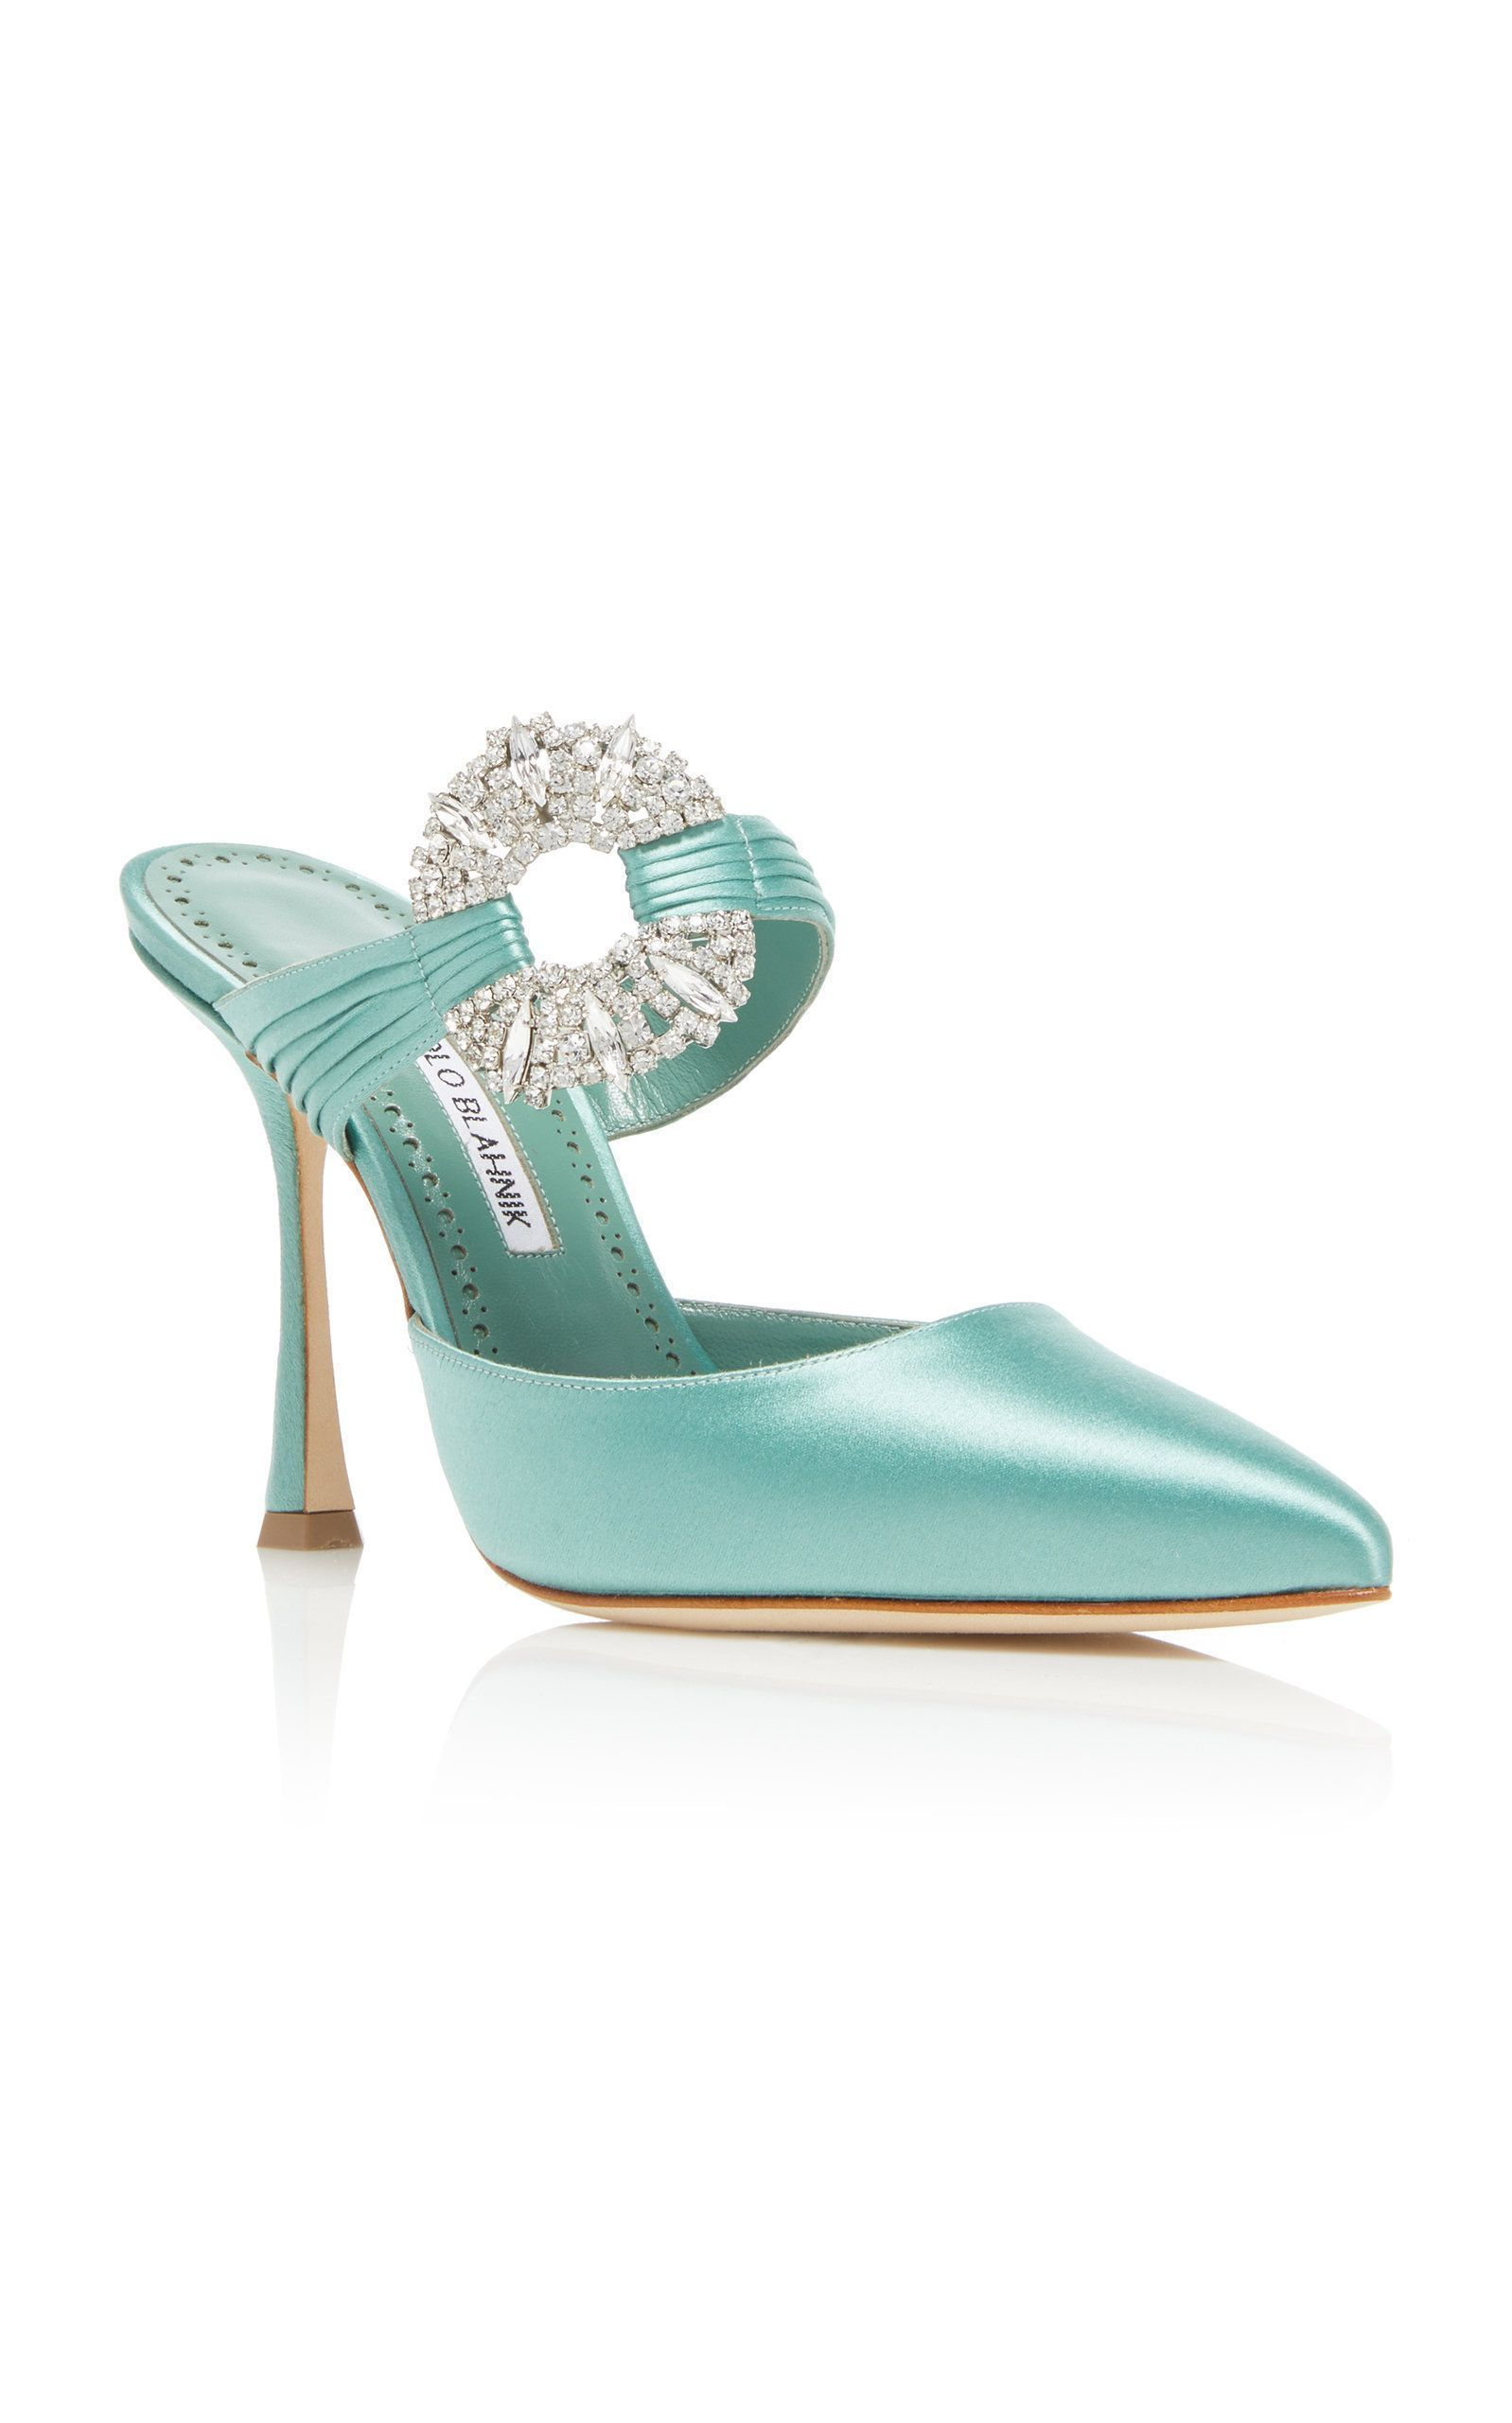 Manolo Blahnik Women's Maidugur Jewel Mule